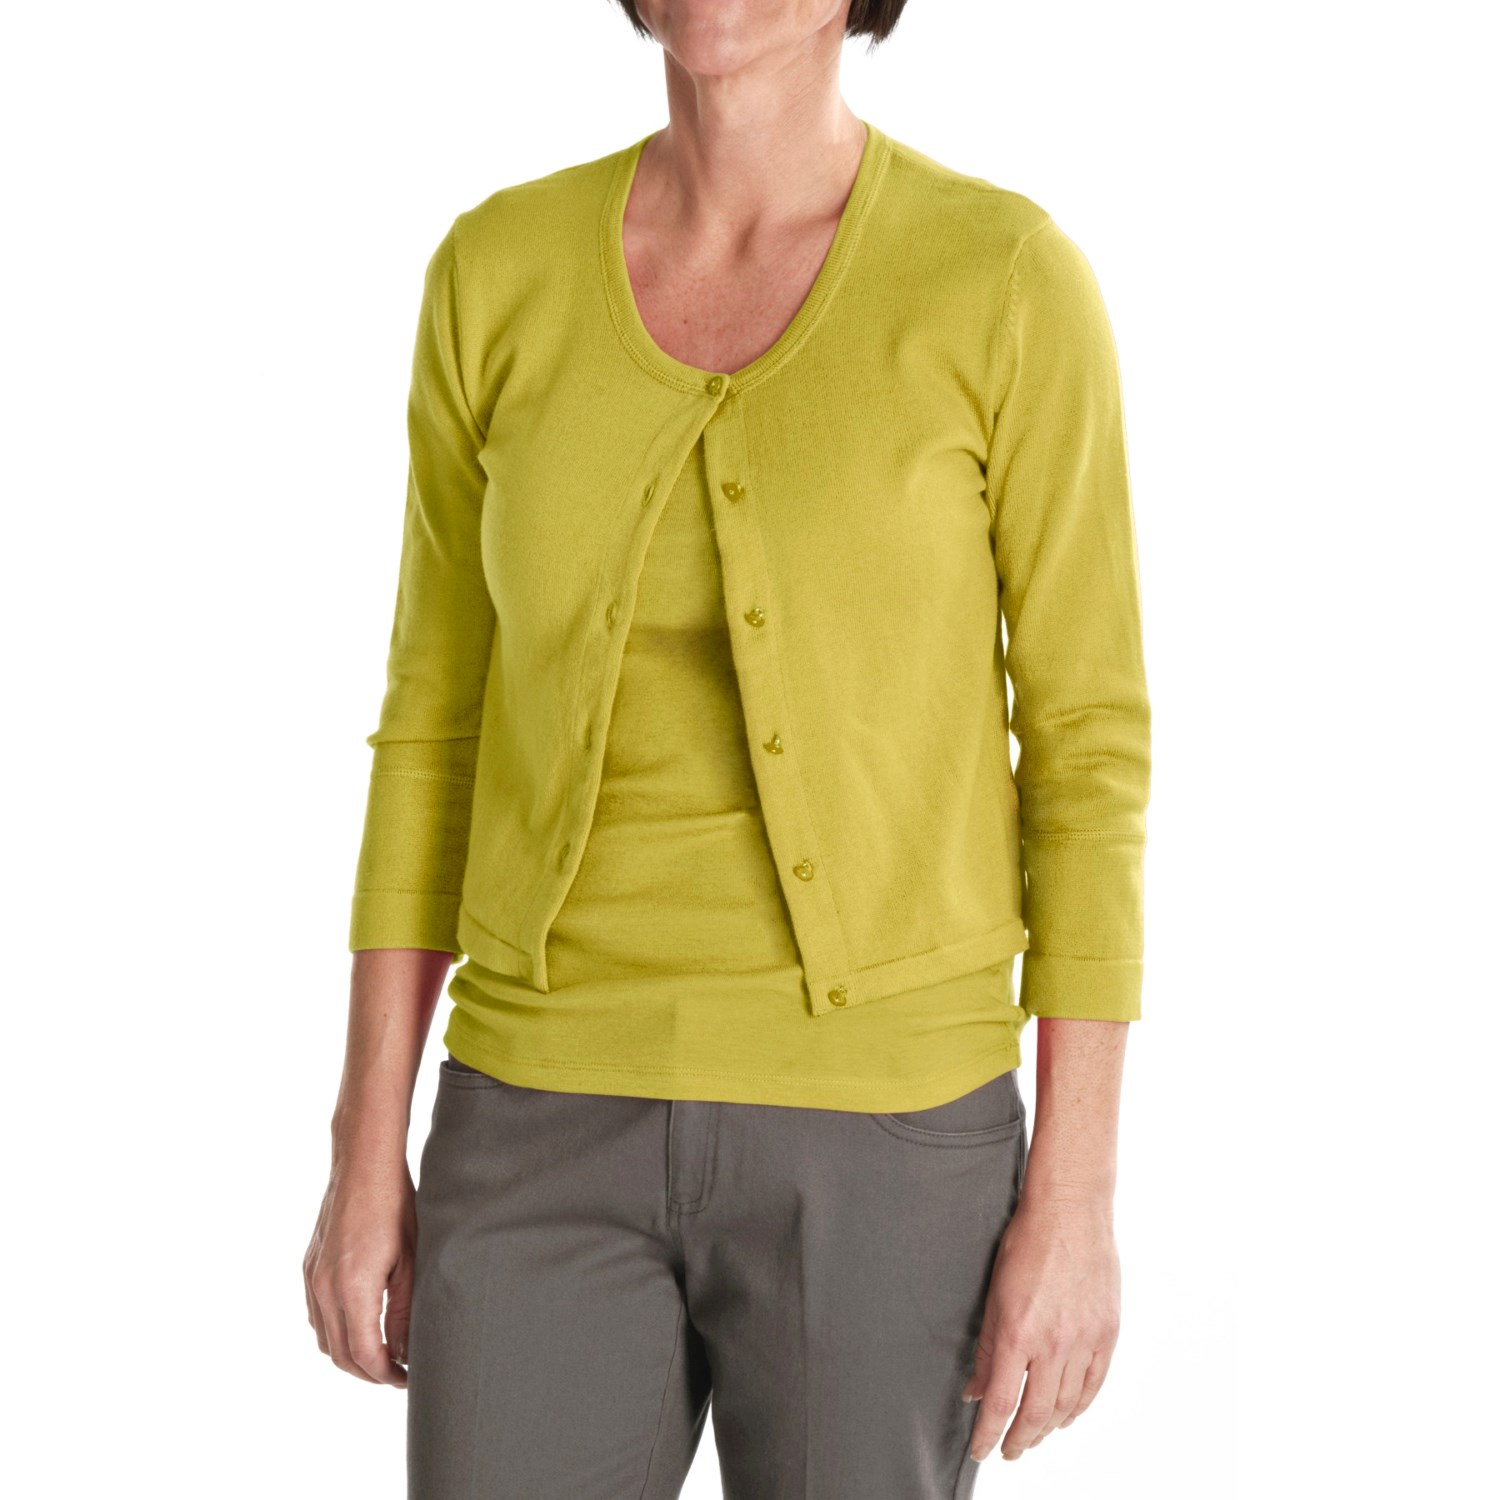 Womens Cotton Sweaters When it comes to a versatile garment that she can wear during any season, women's cotton sweaters fit the bill. For the spring and fall, choosing this clothing staple in the appropriate weight means that she will look wonderful while staying comfortable in case of an unexpected gust of chilly wind.